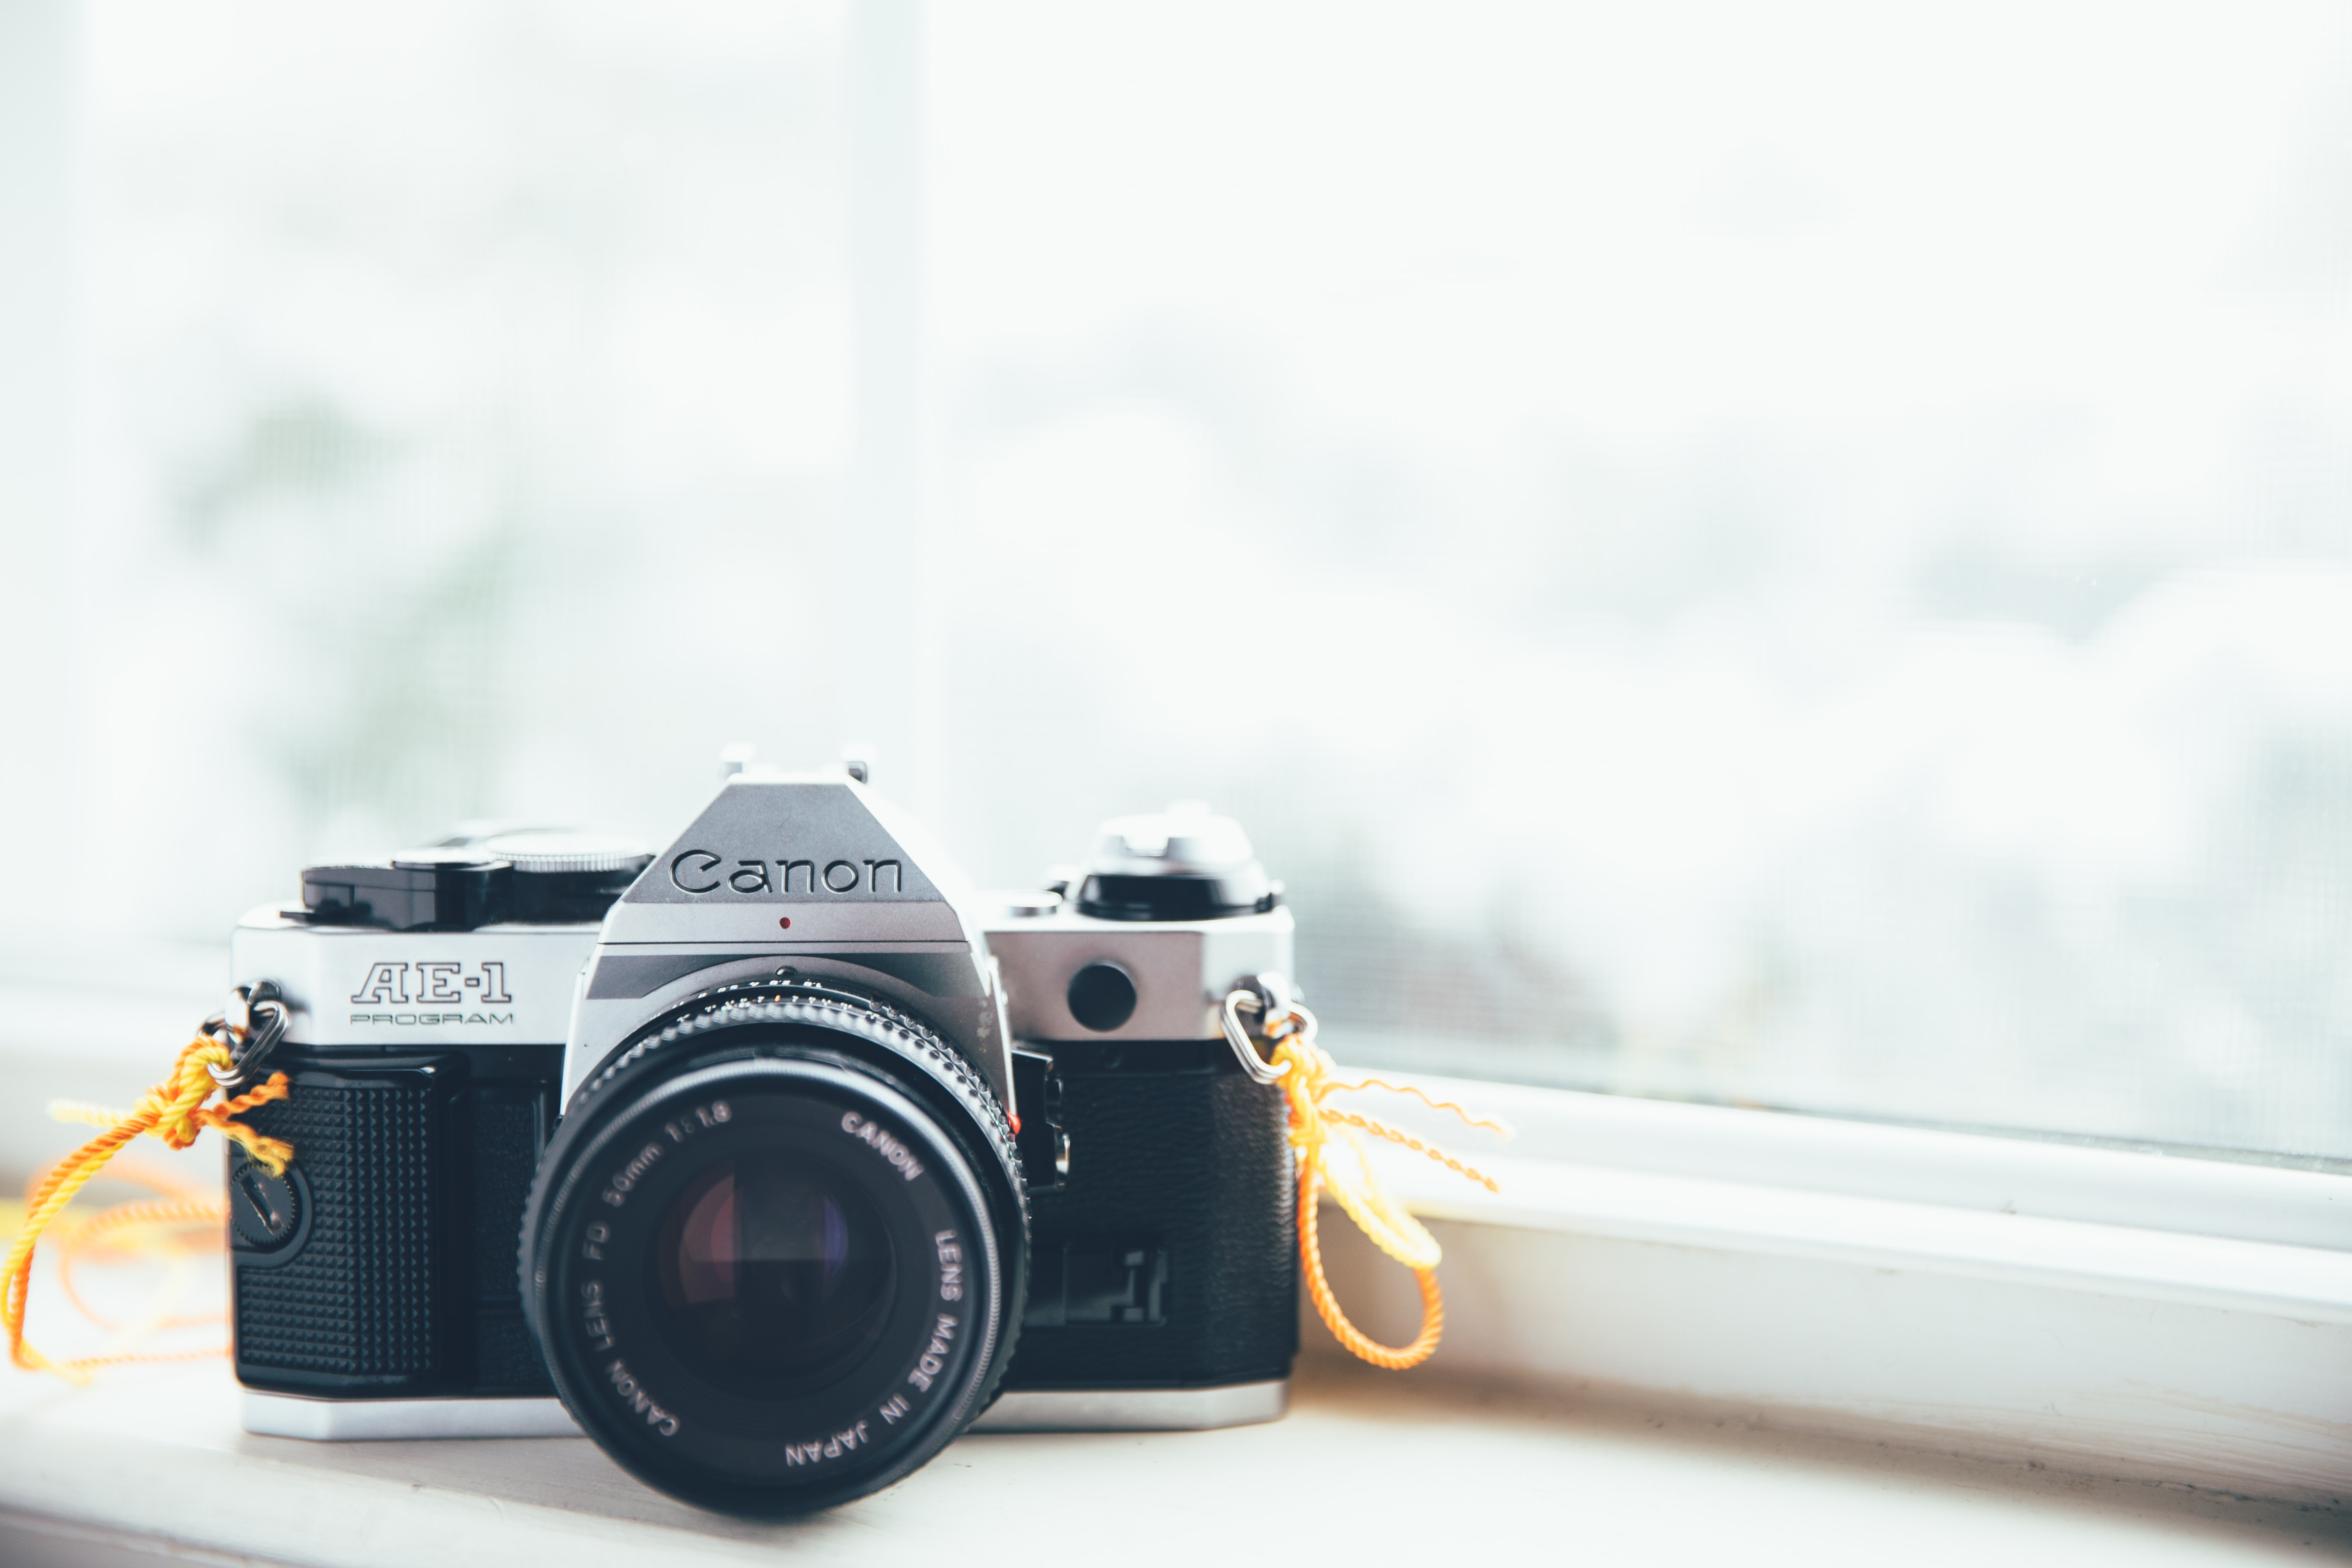 Macro shot of vintage canon camera on window sill with window in background and light